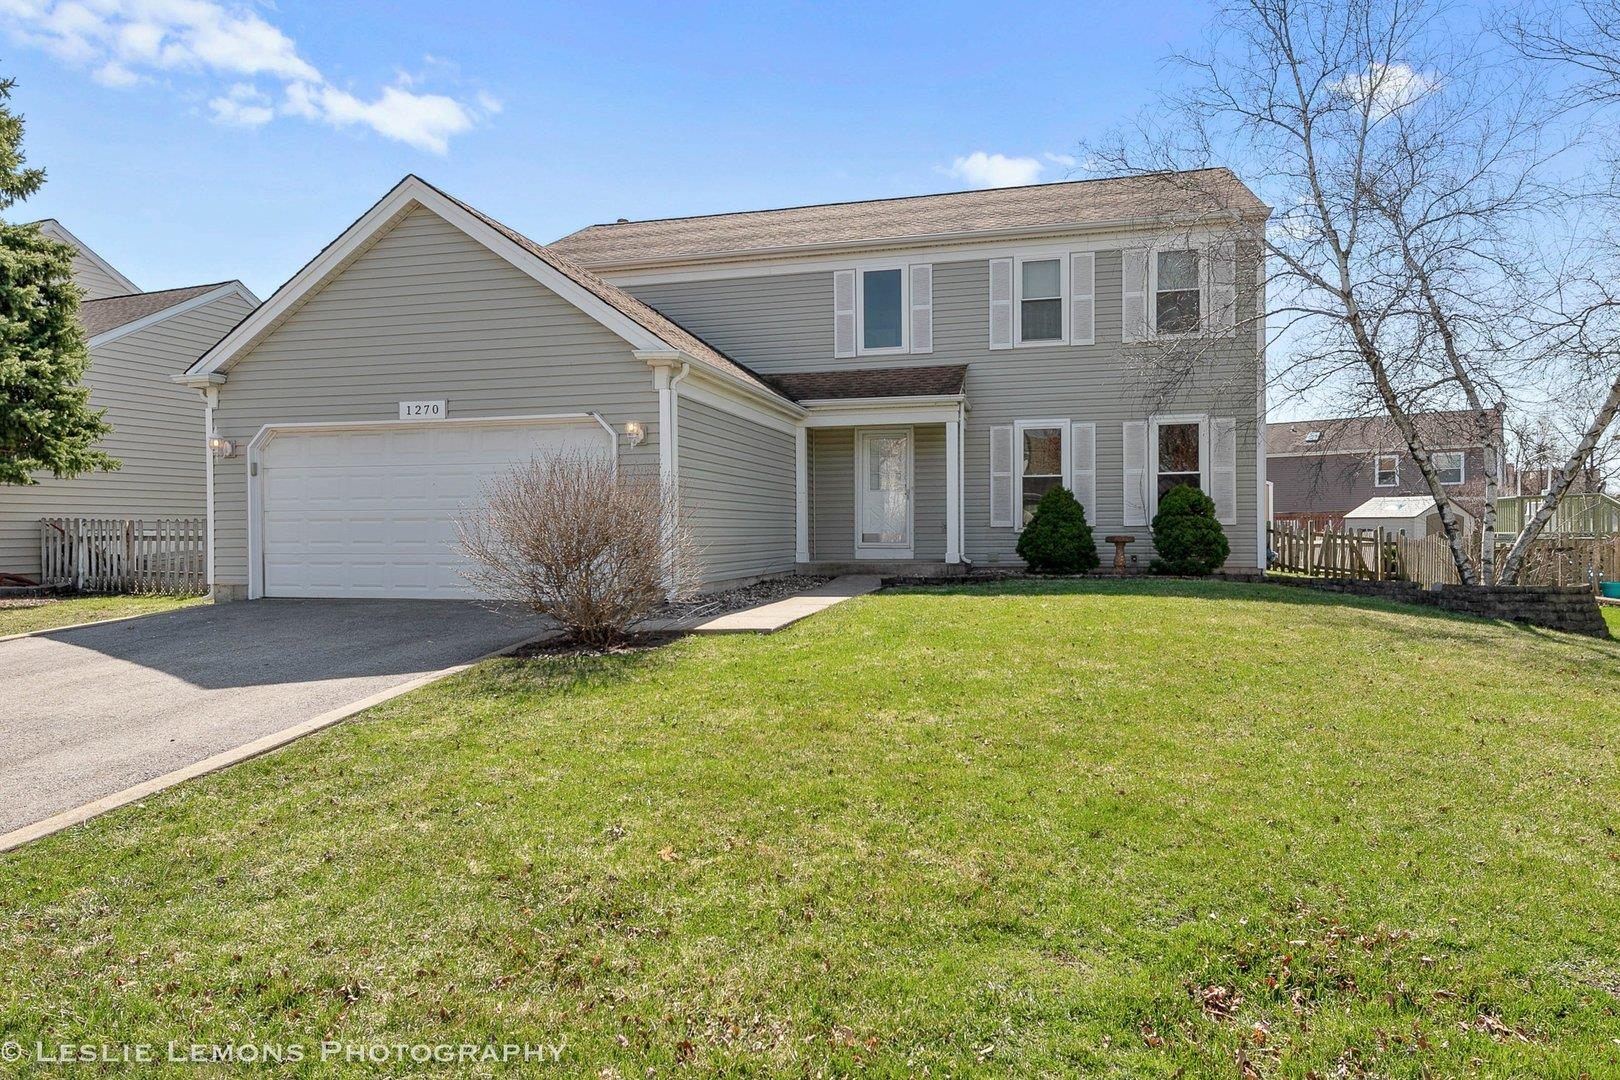 1270 Bison Trail, Carol Stream, IL 60188 - #: 11039106